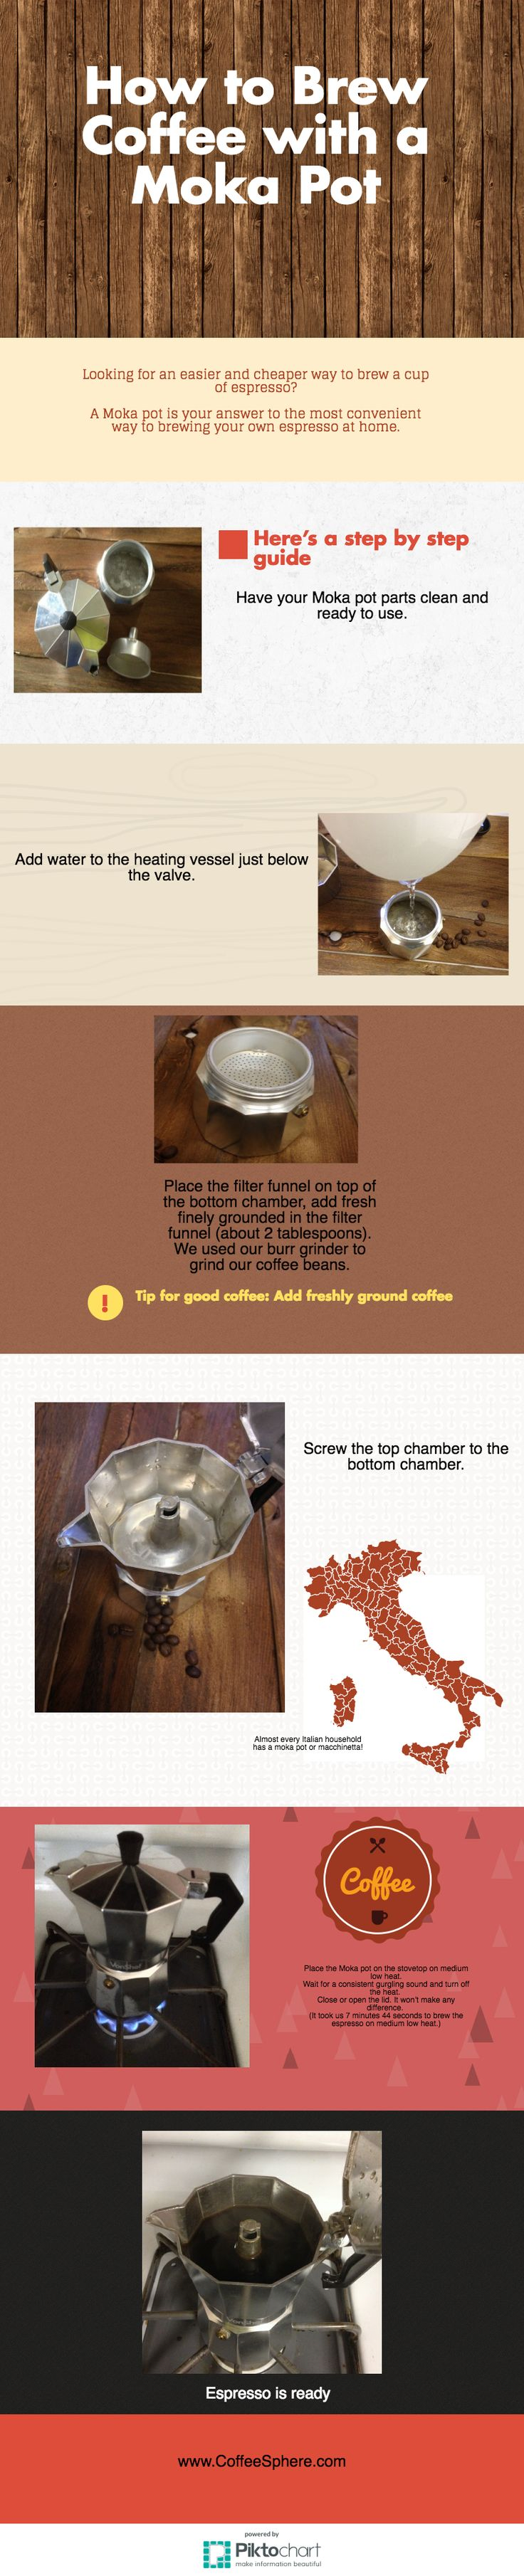 CoffeeSphere Moka Pot Infographic